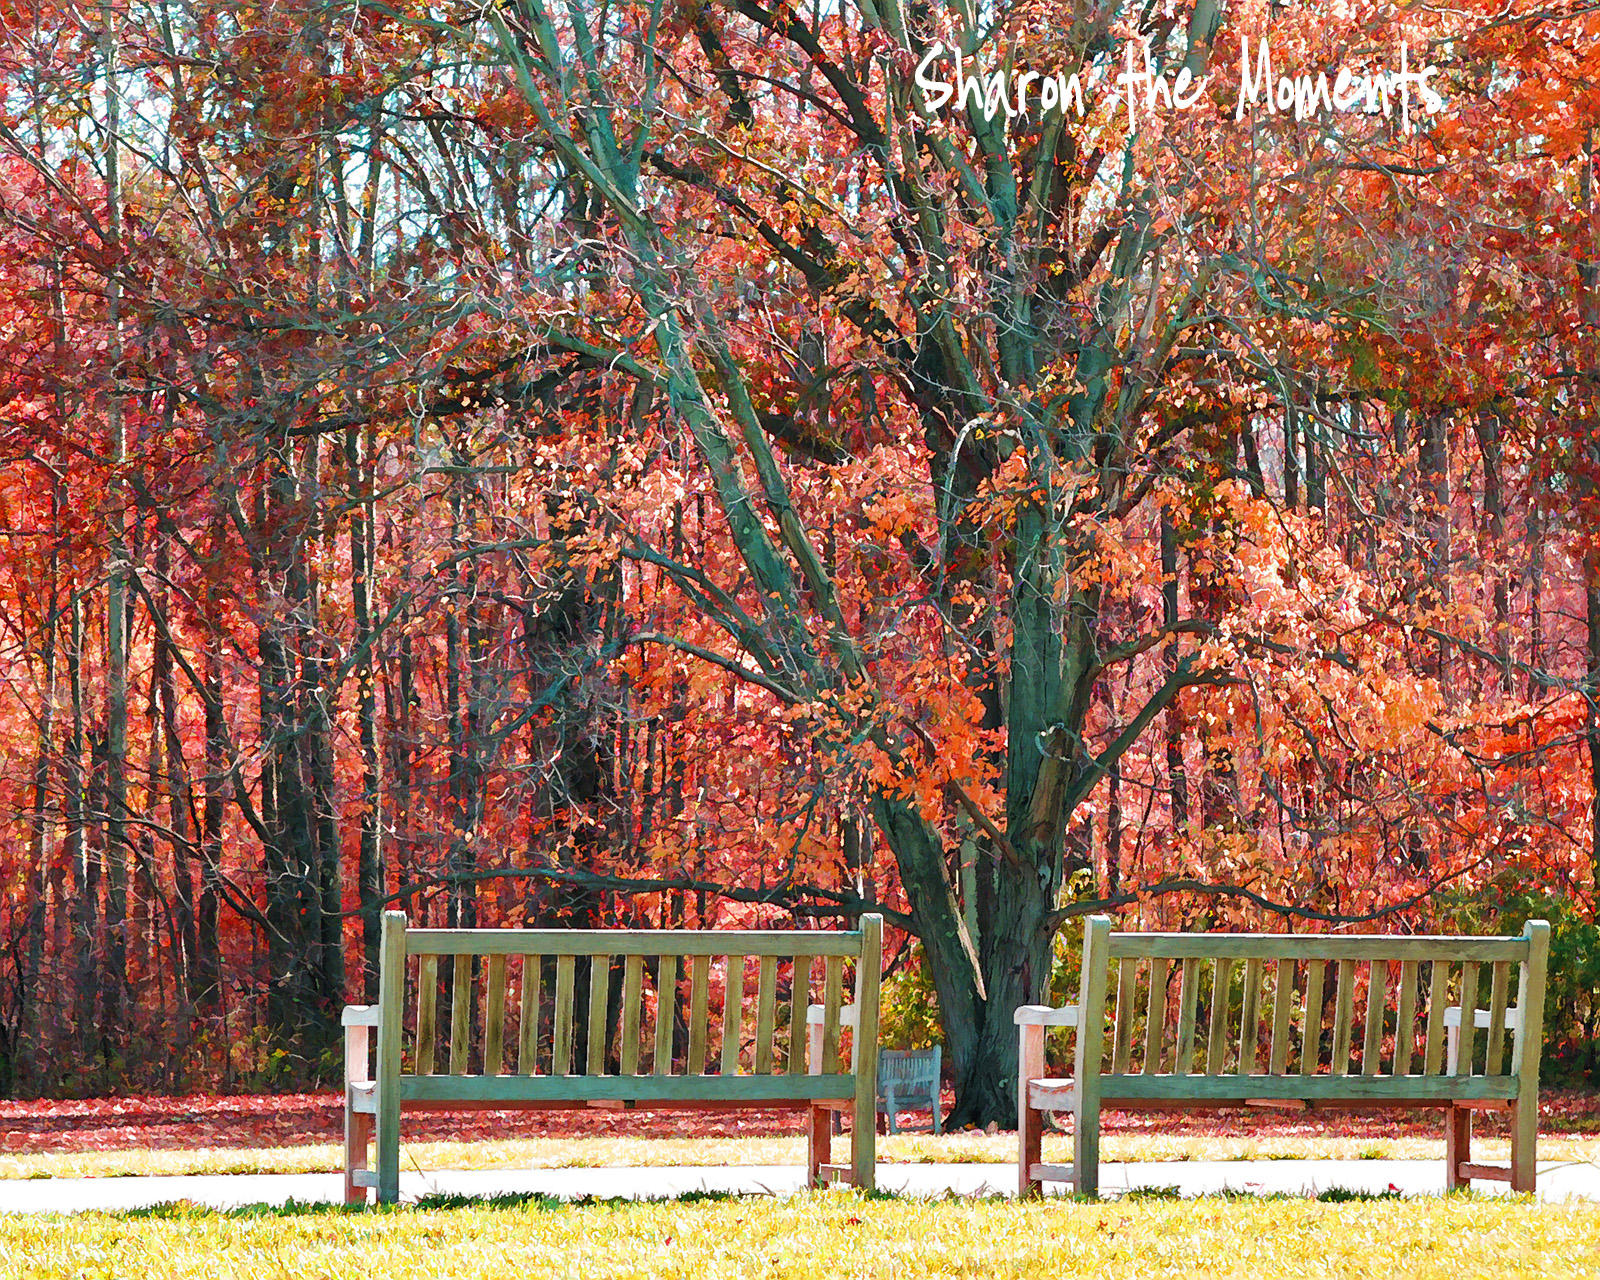 Inniswood Metro Gardens bridge autumn color|Sharon the Moments blog